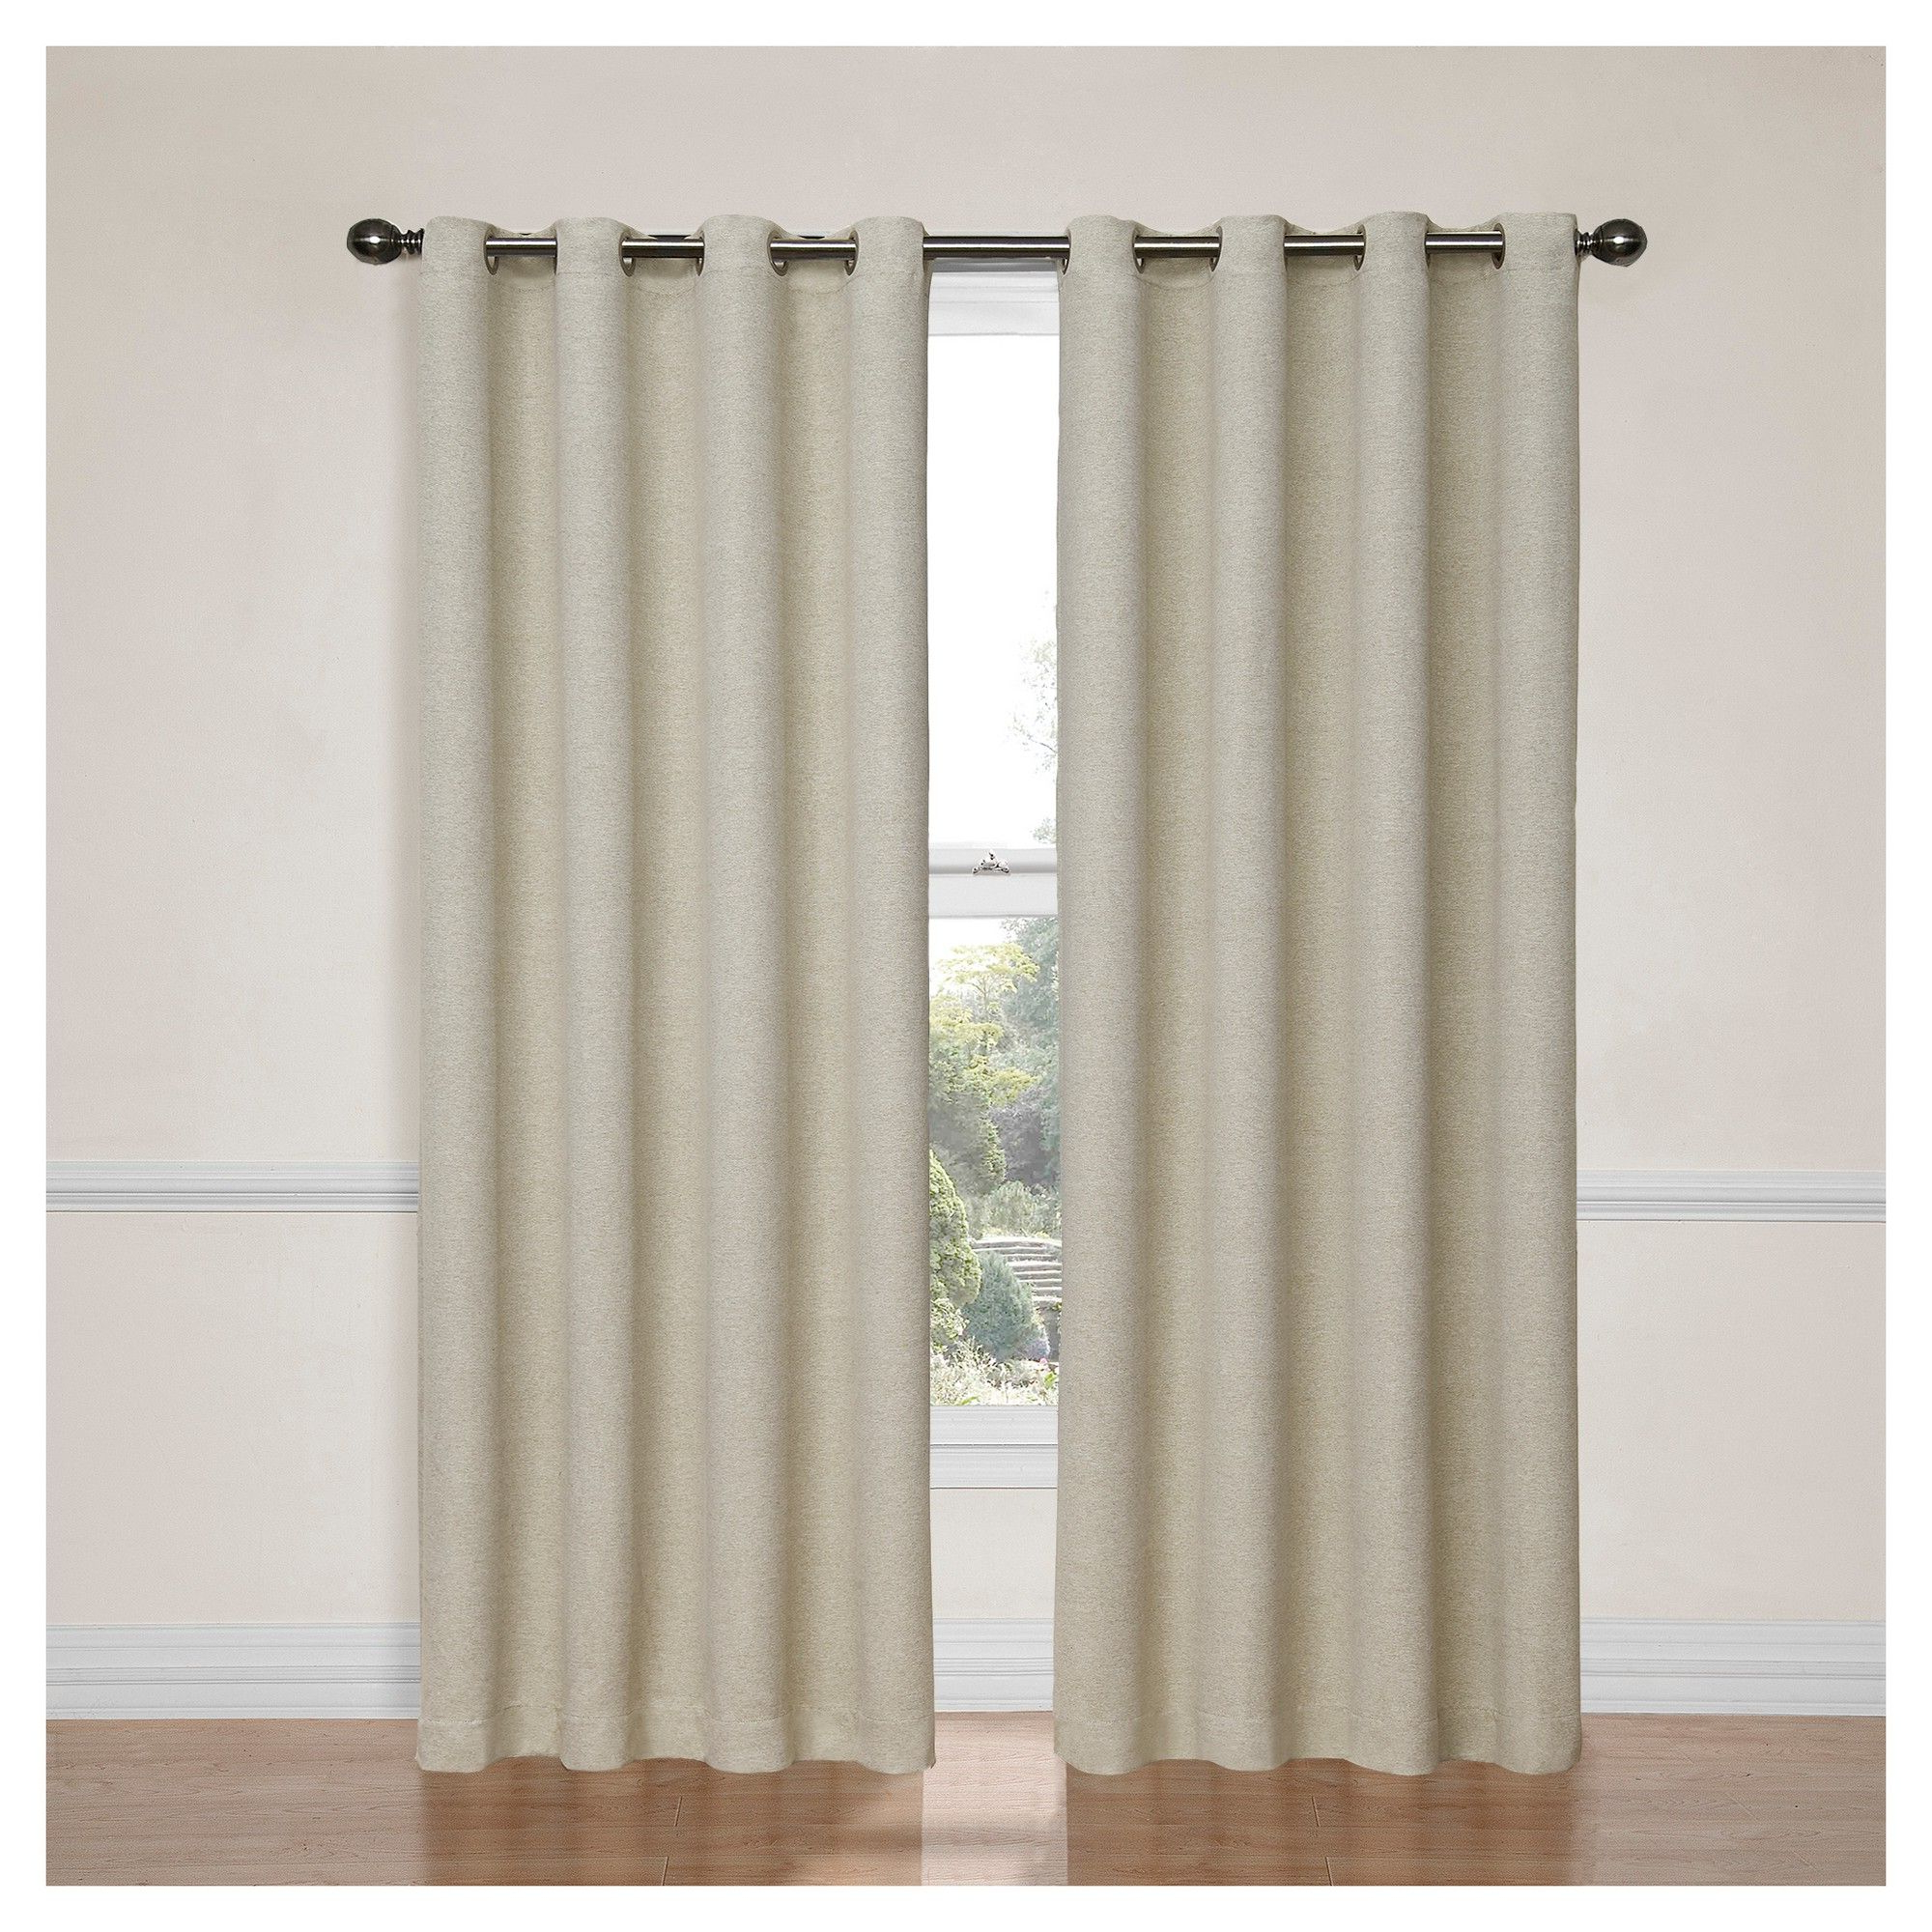 "Thermaweave Blackout Curtains Regarding Preferred Bobbi Thermaweave Blackout Curtain Ivory (52""x84"") – Eclipse (View 14 of 20)"